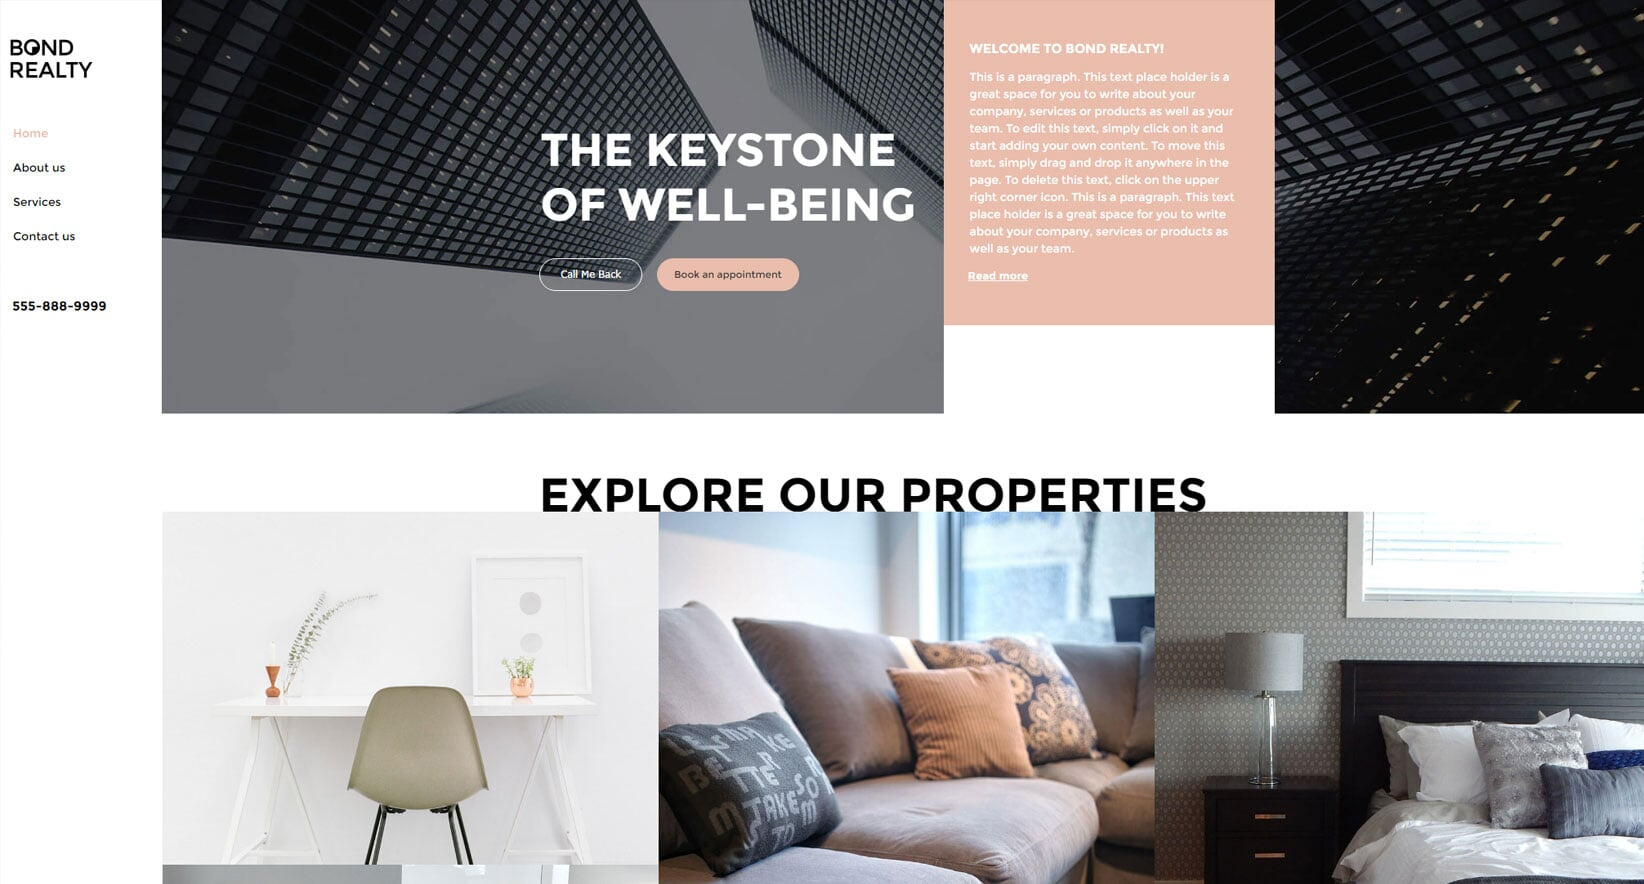 Bond realty - Template